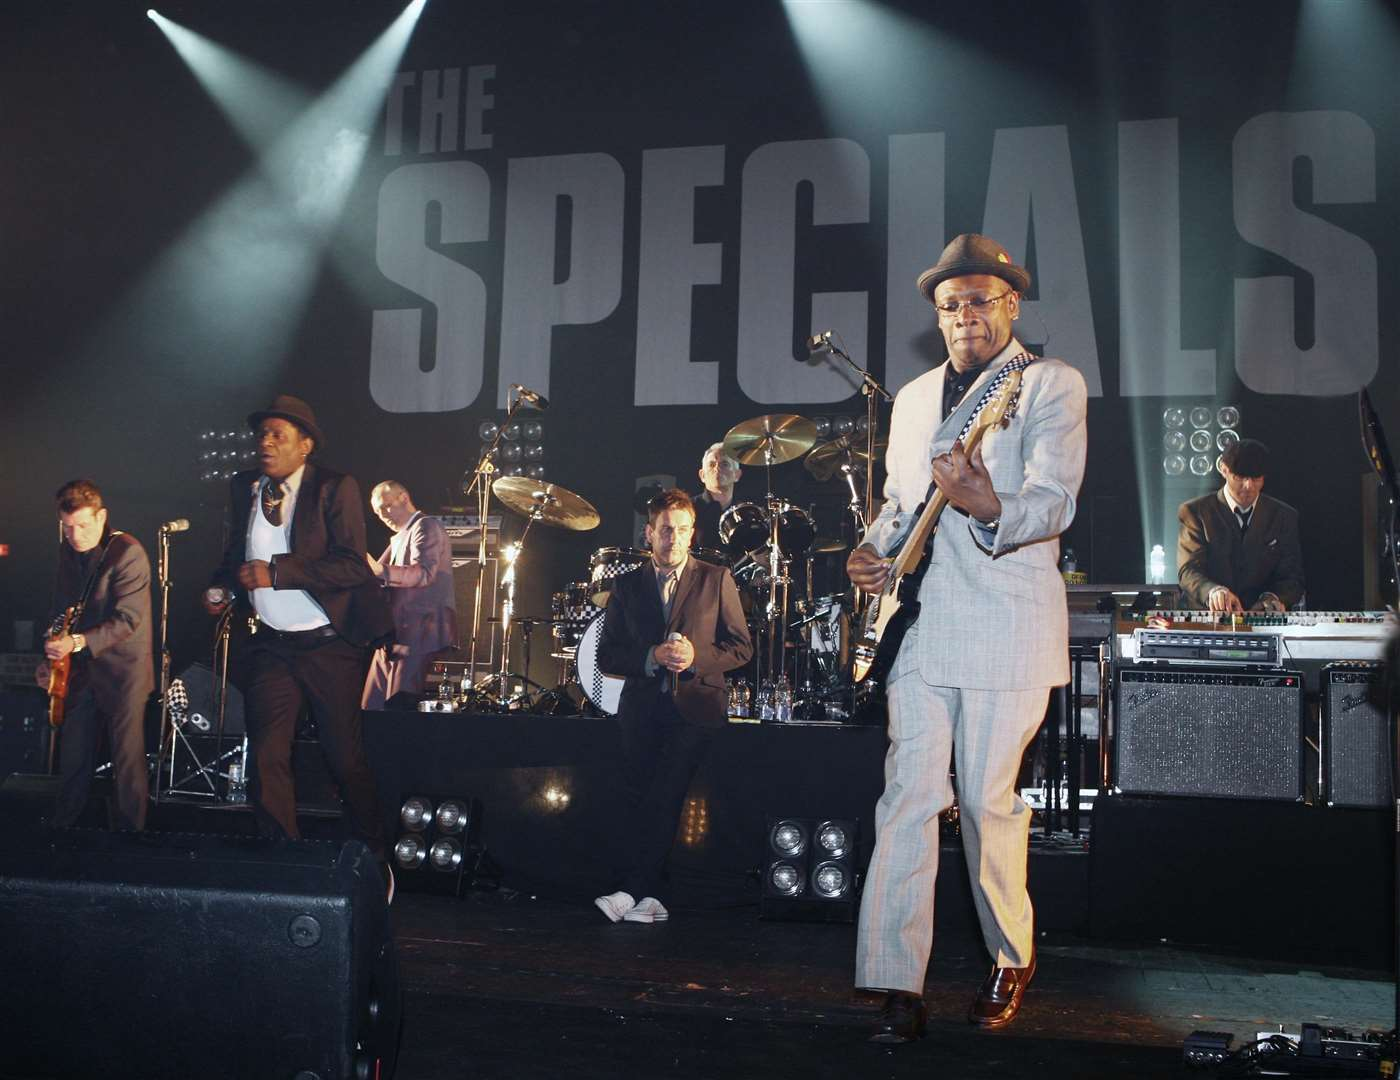 The Specials are playing Margate Winter Gardens